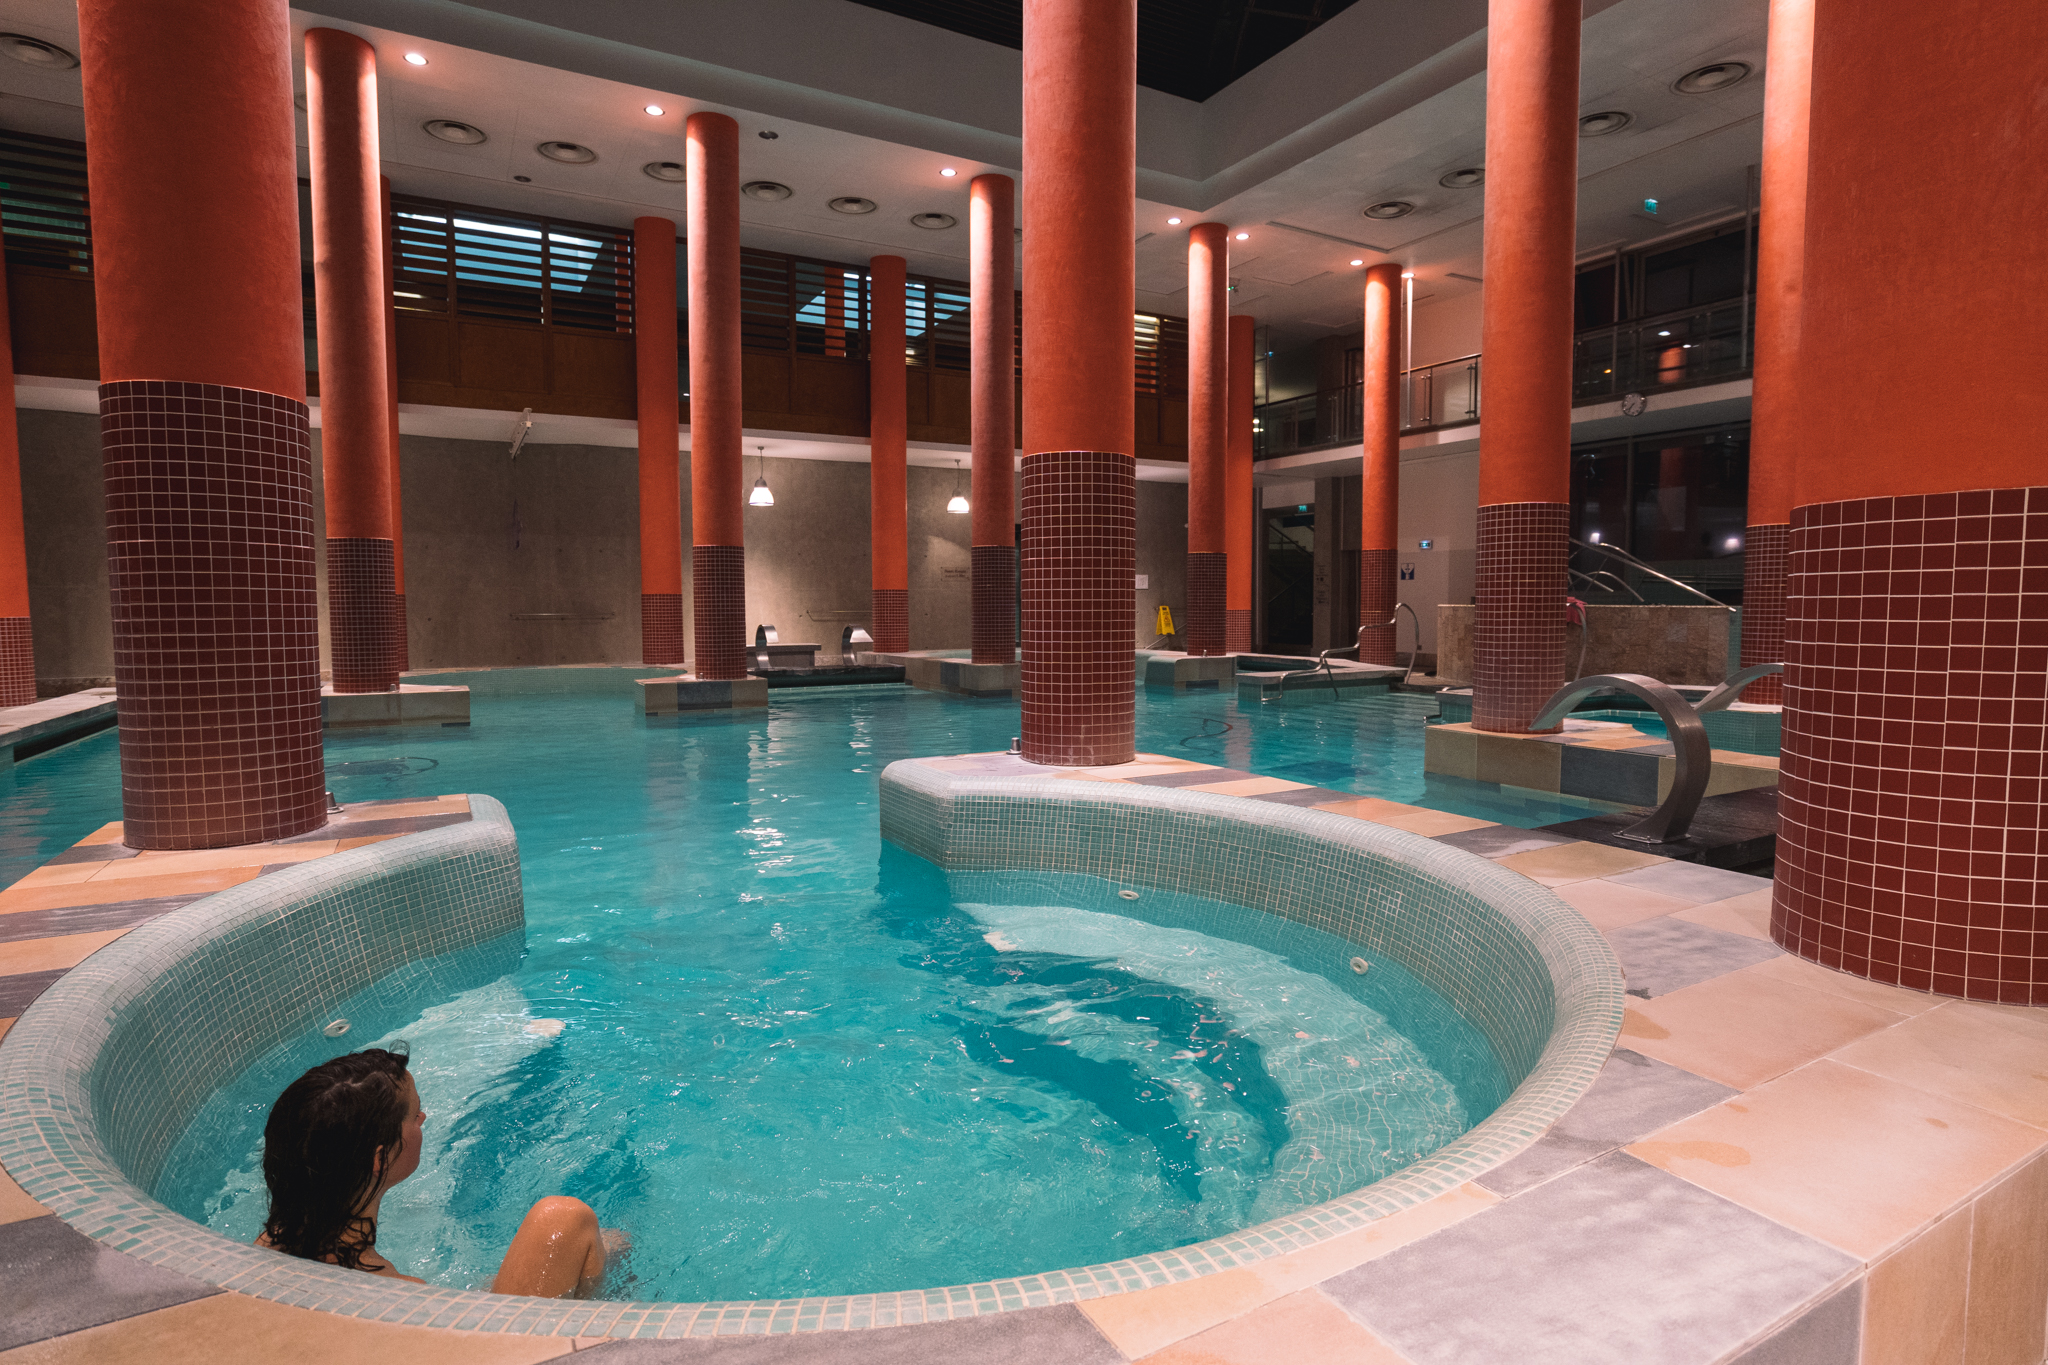 ax-les-thermes-bains-couloubret